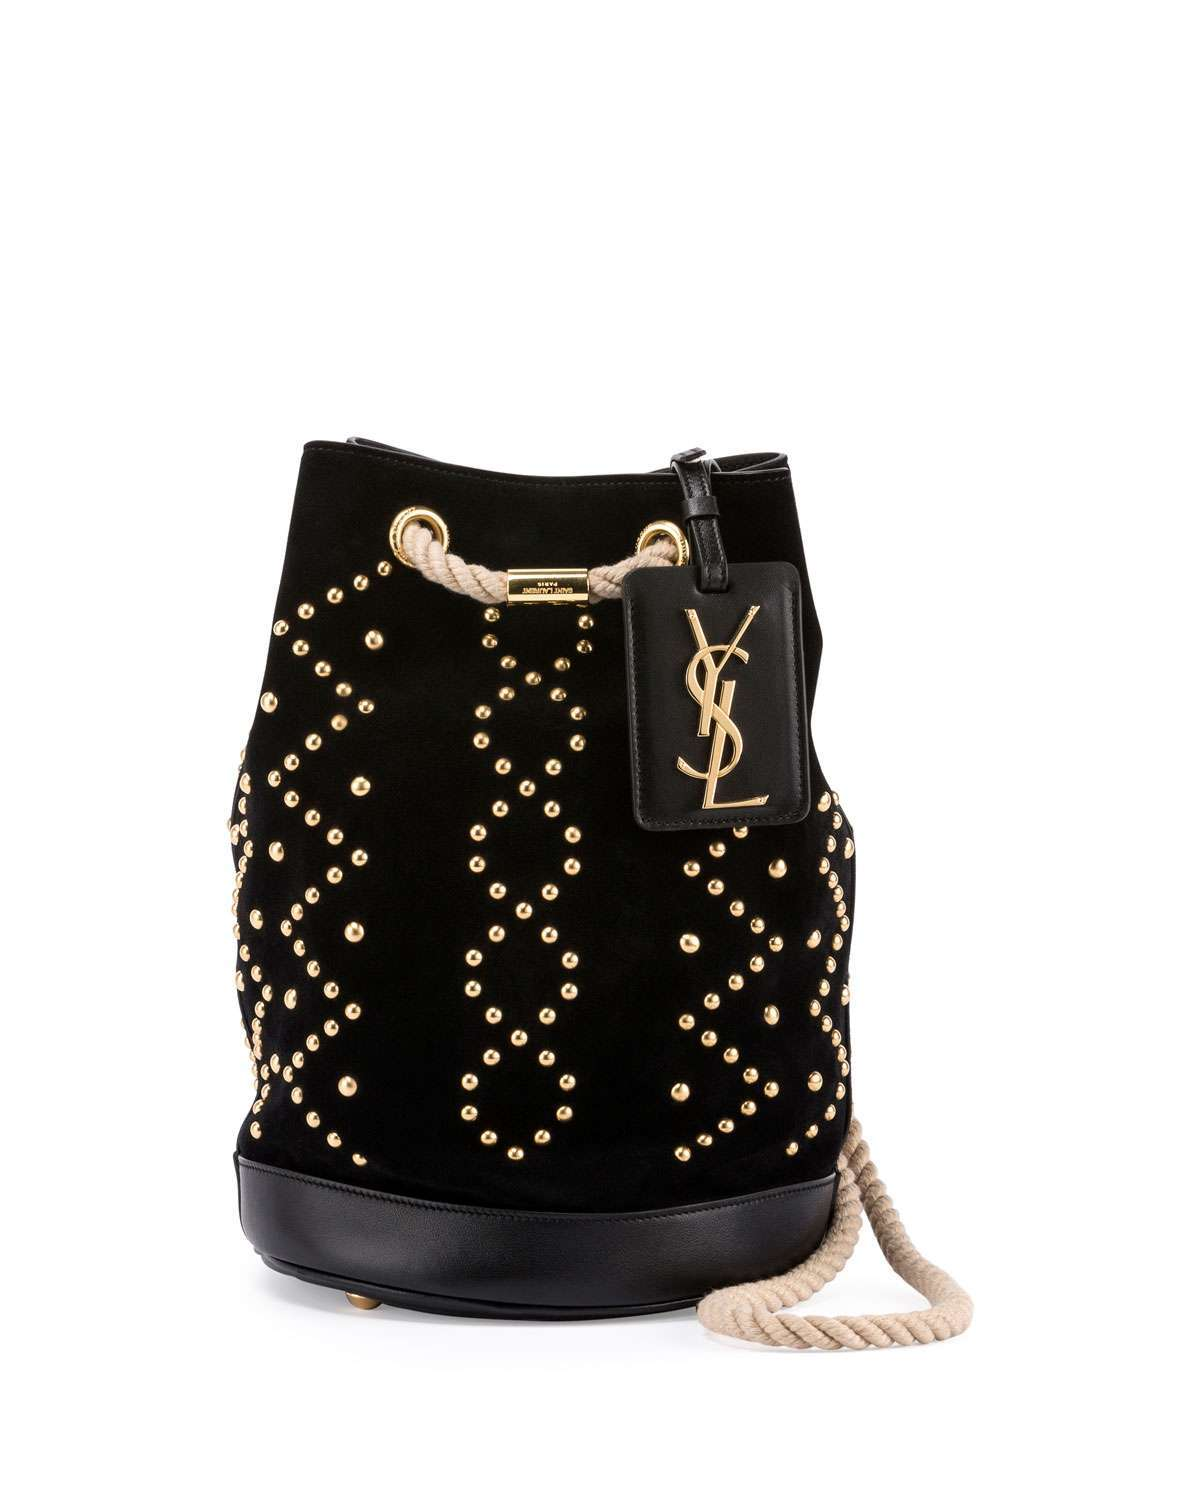 Mini secchiello borchiato Saint Laurent